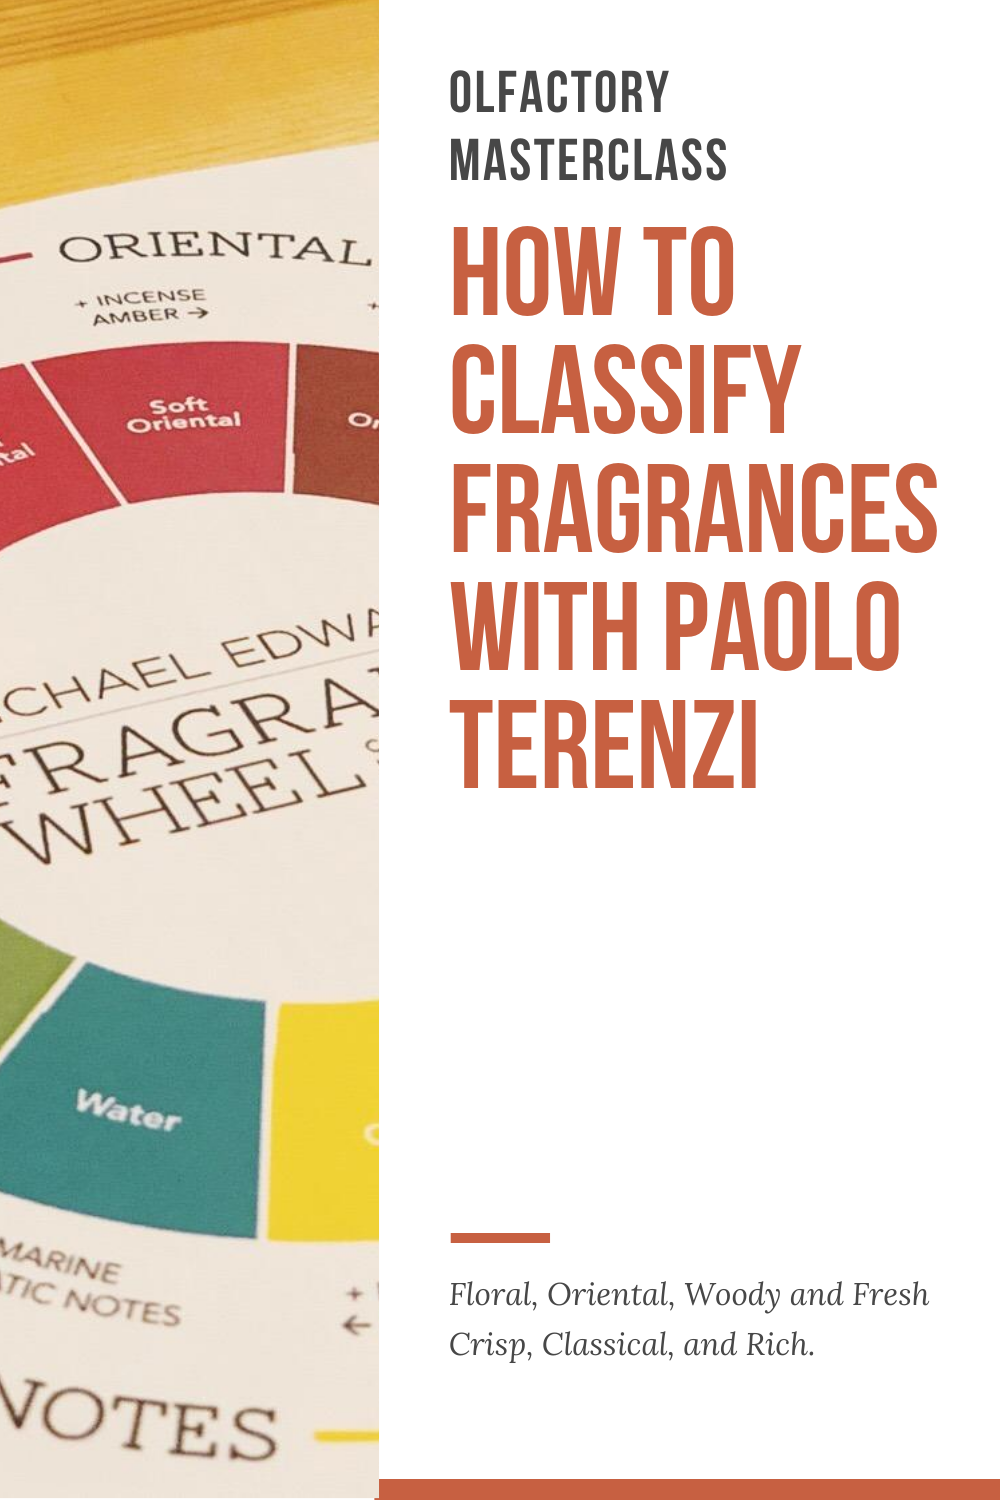 How to Classify Fragrances